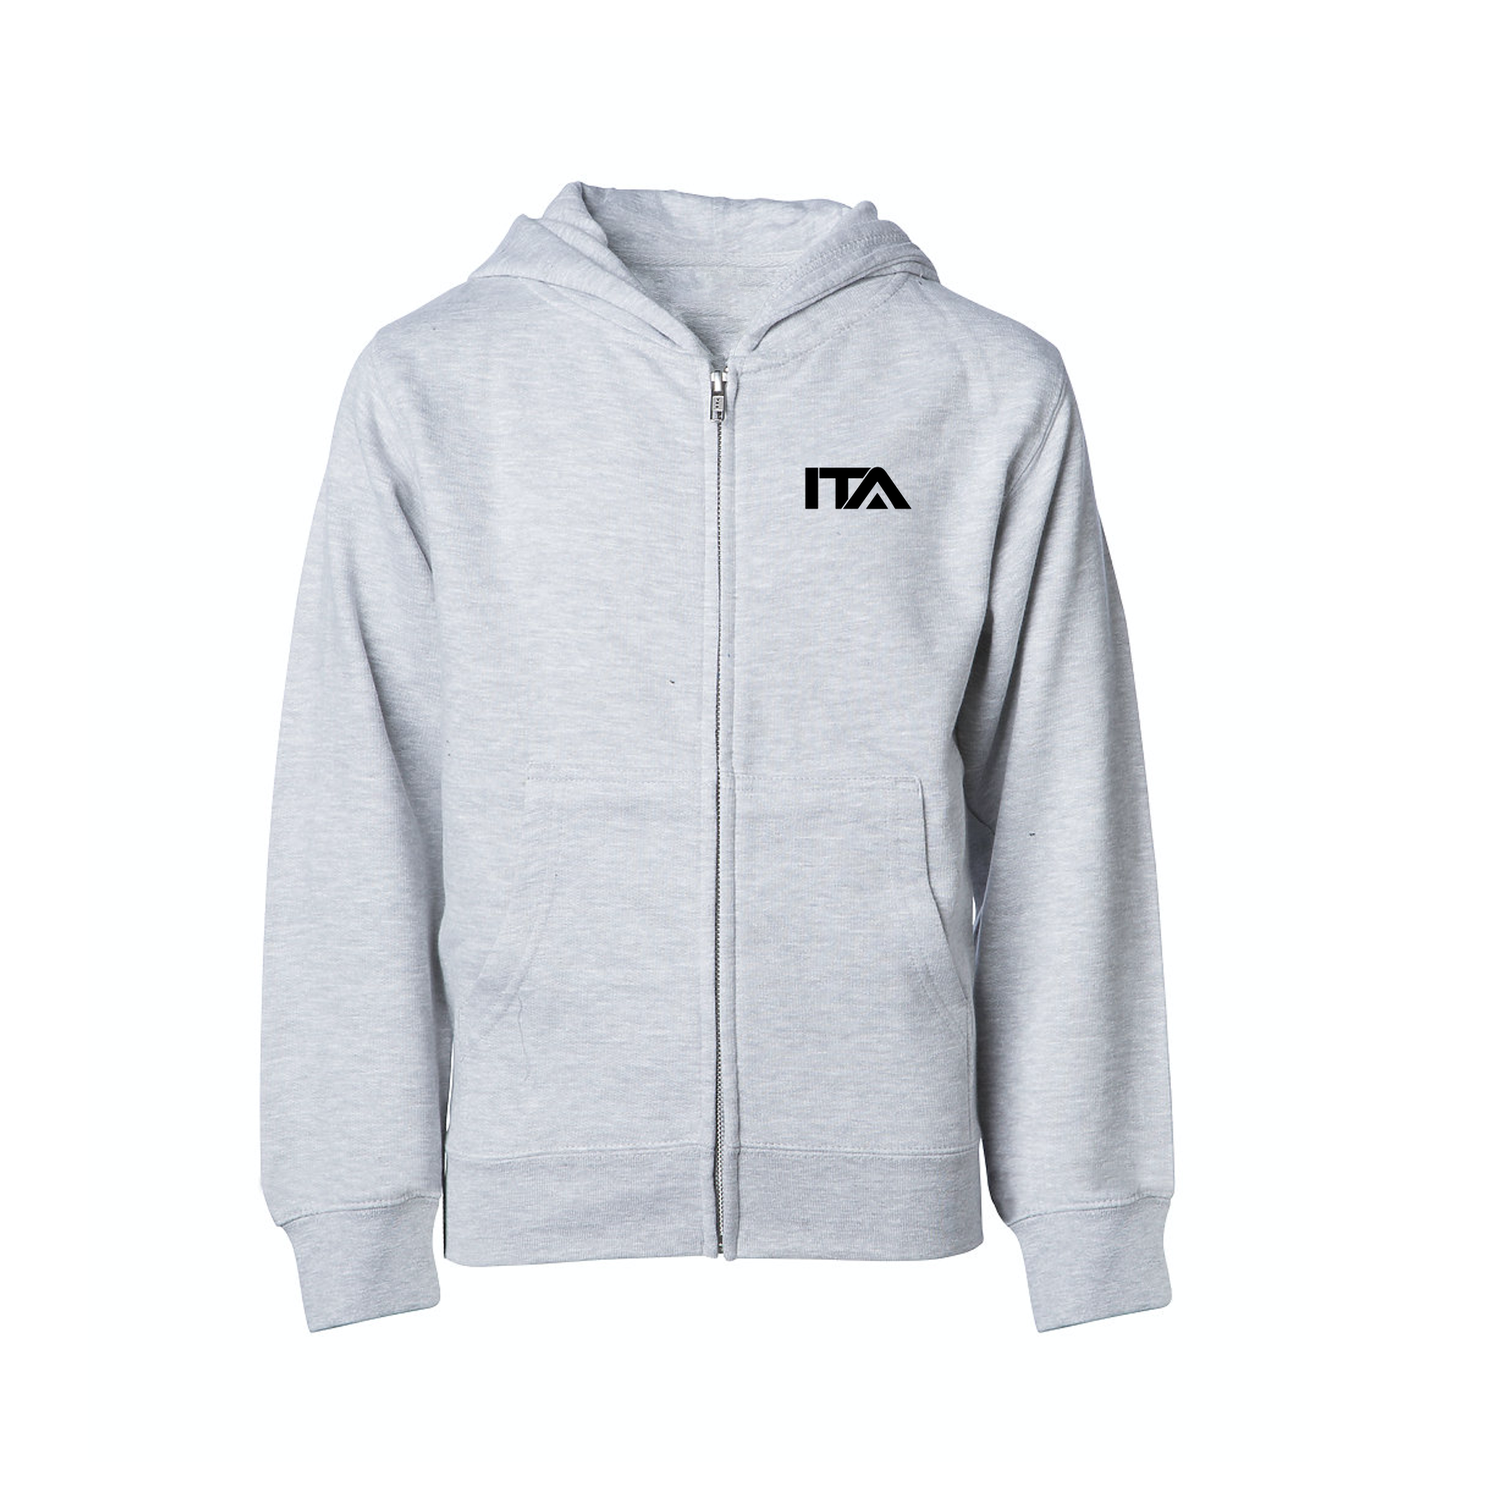 Image of Kids Gray Zip Up Sweater